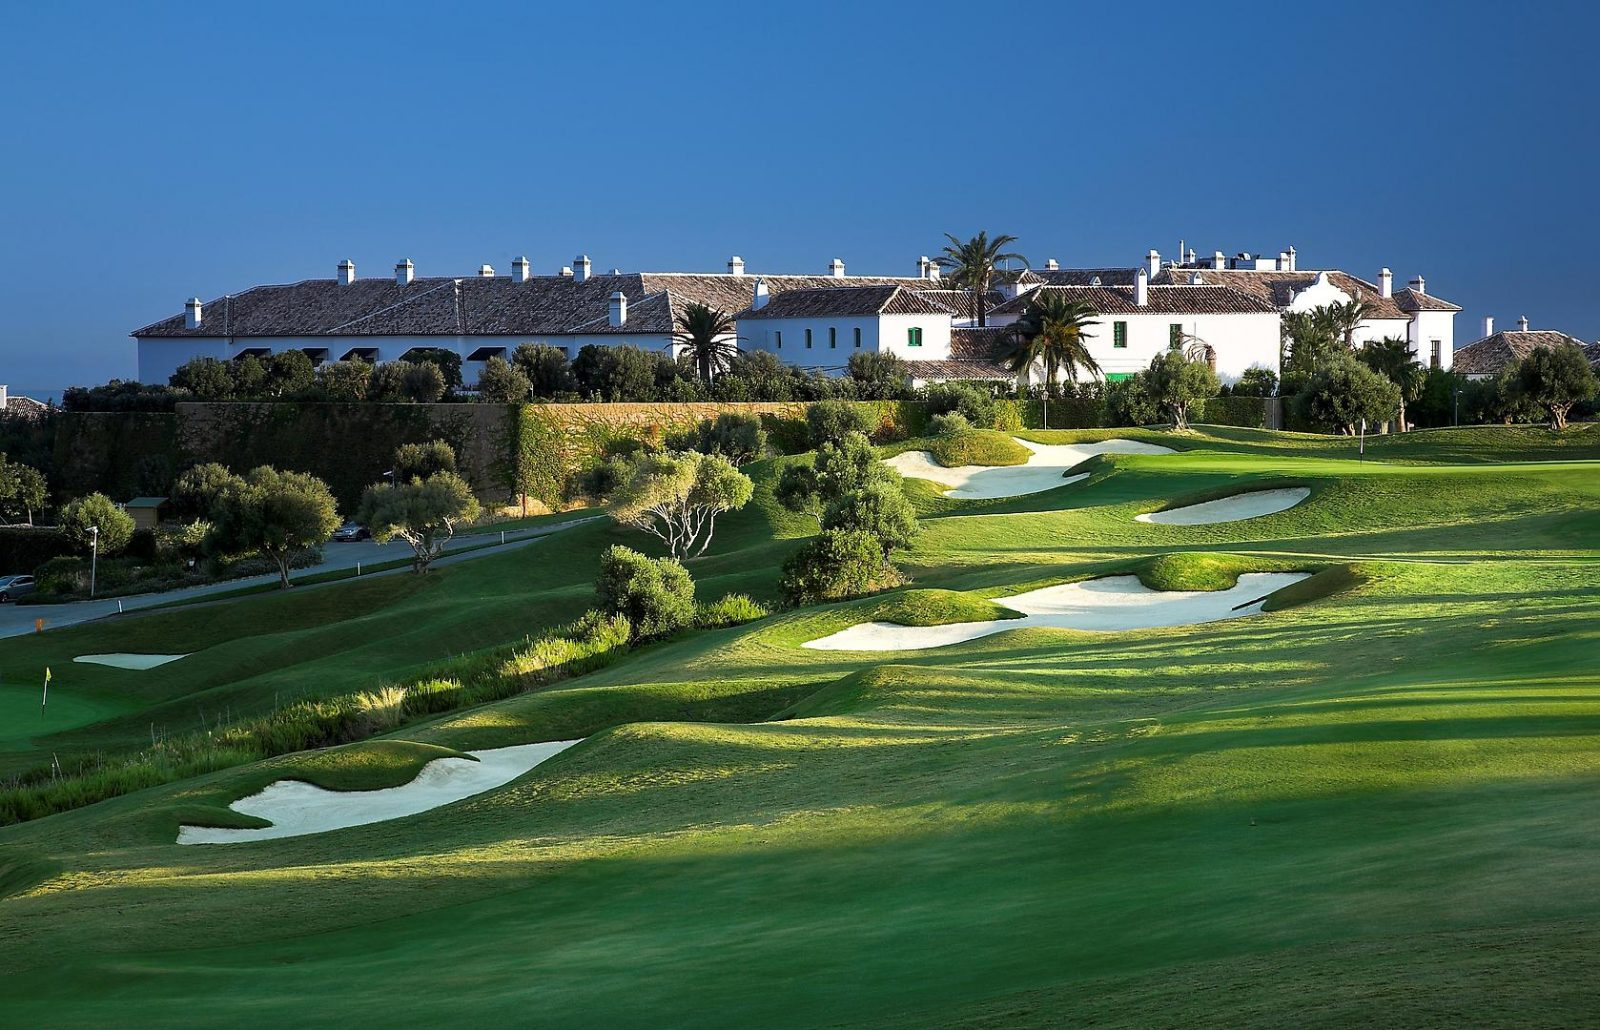 Costa del Sol golf-Spain Golf-Finca-Cortesin